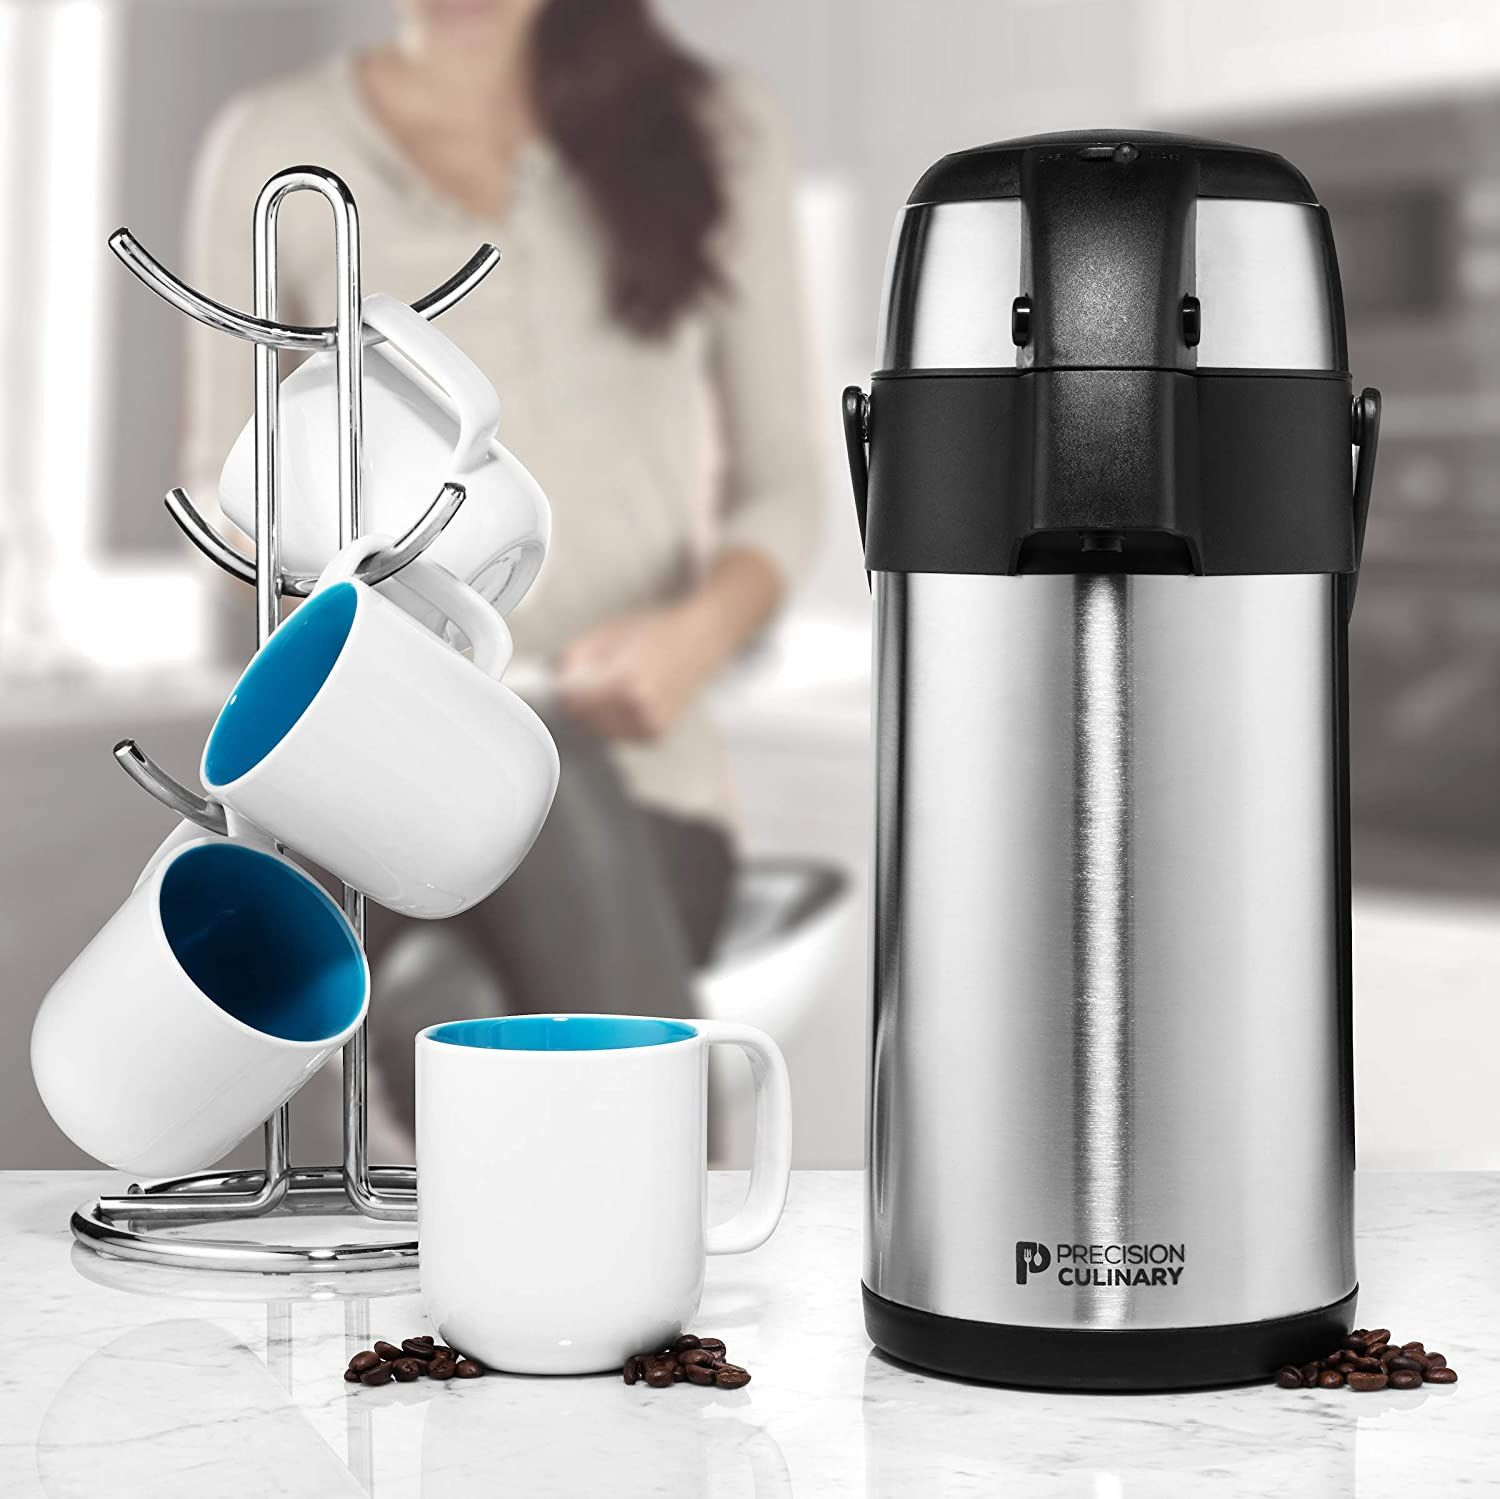 Airpot Coffee Dispenser with Pump/Stainless Steel Thermal Coffee Carafe - Three Liter (102 oz.) Hot Beverage Dispenser with On/Off Pump Switch - Vacuu